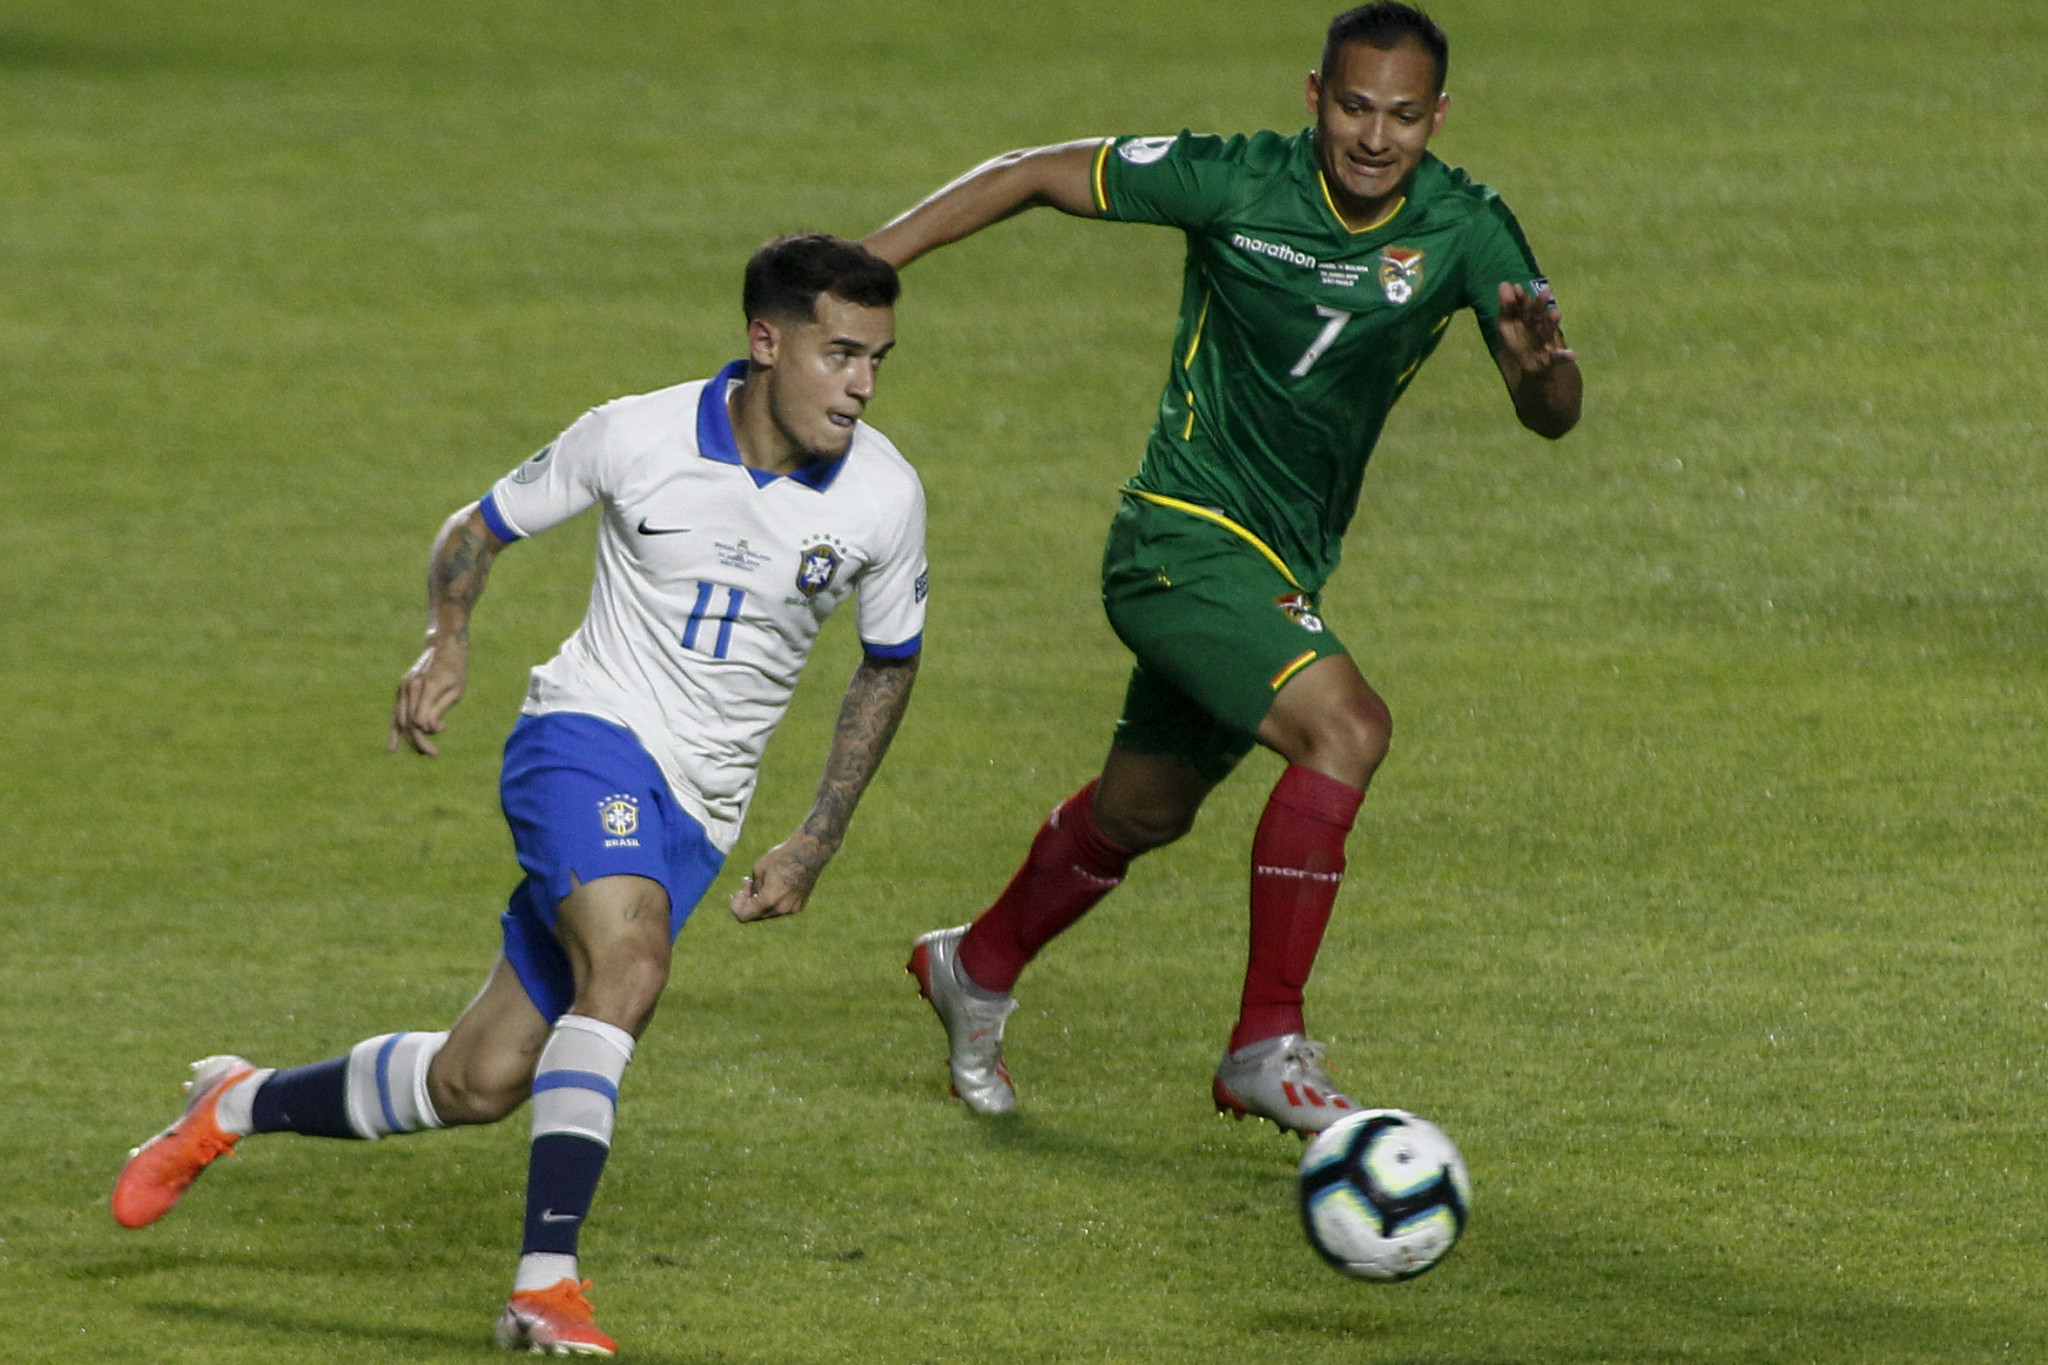 Hosts Brazil live up to expectations with comfortable opening Copa América victory against Bolivia